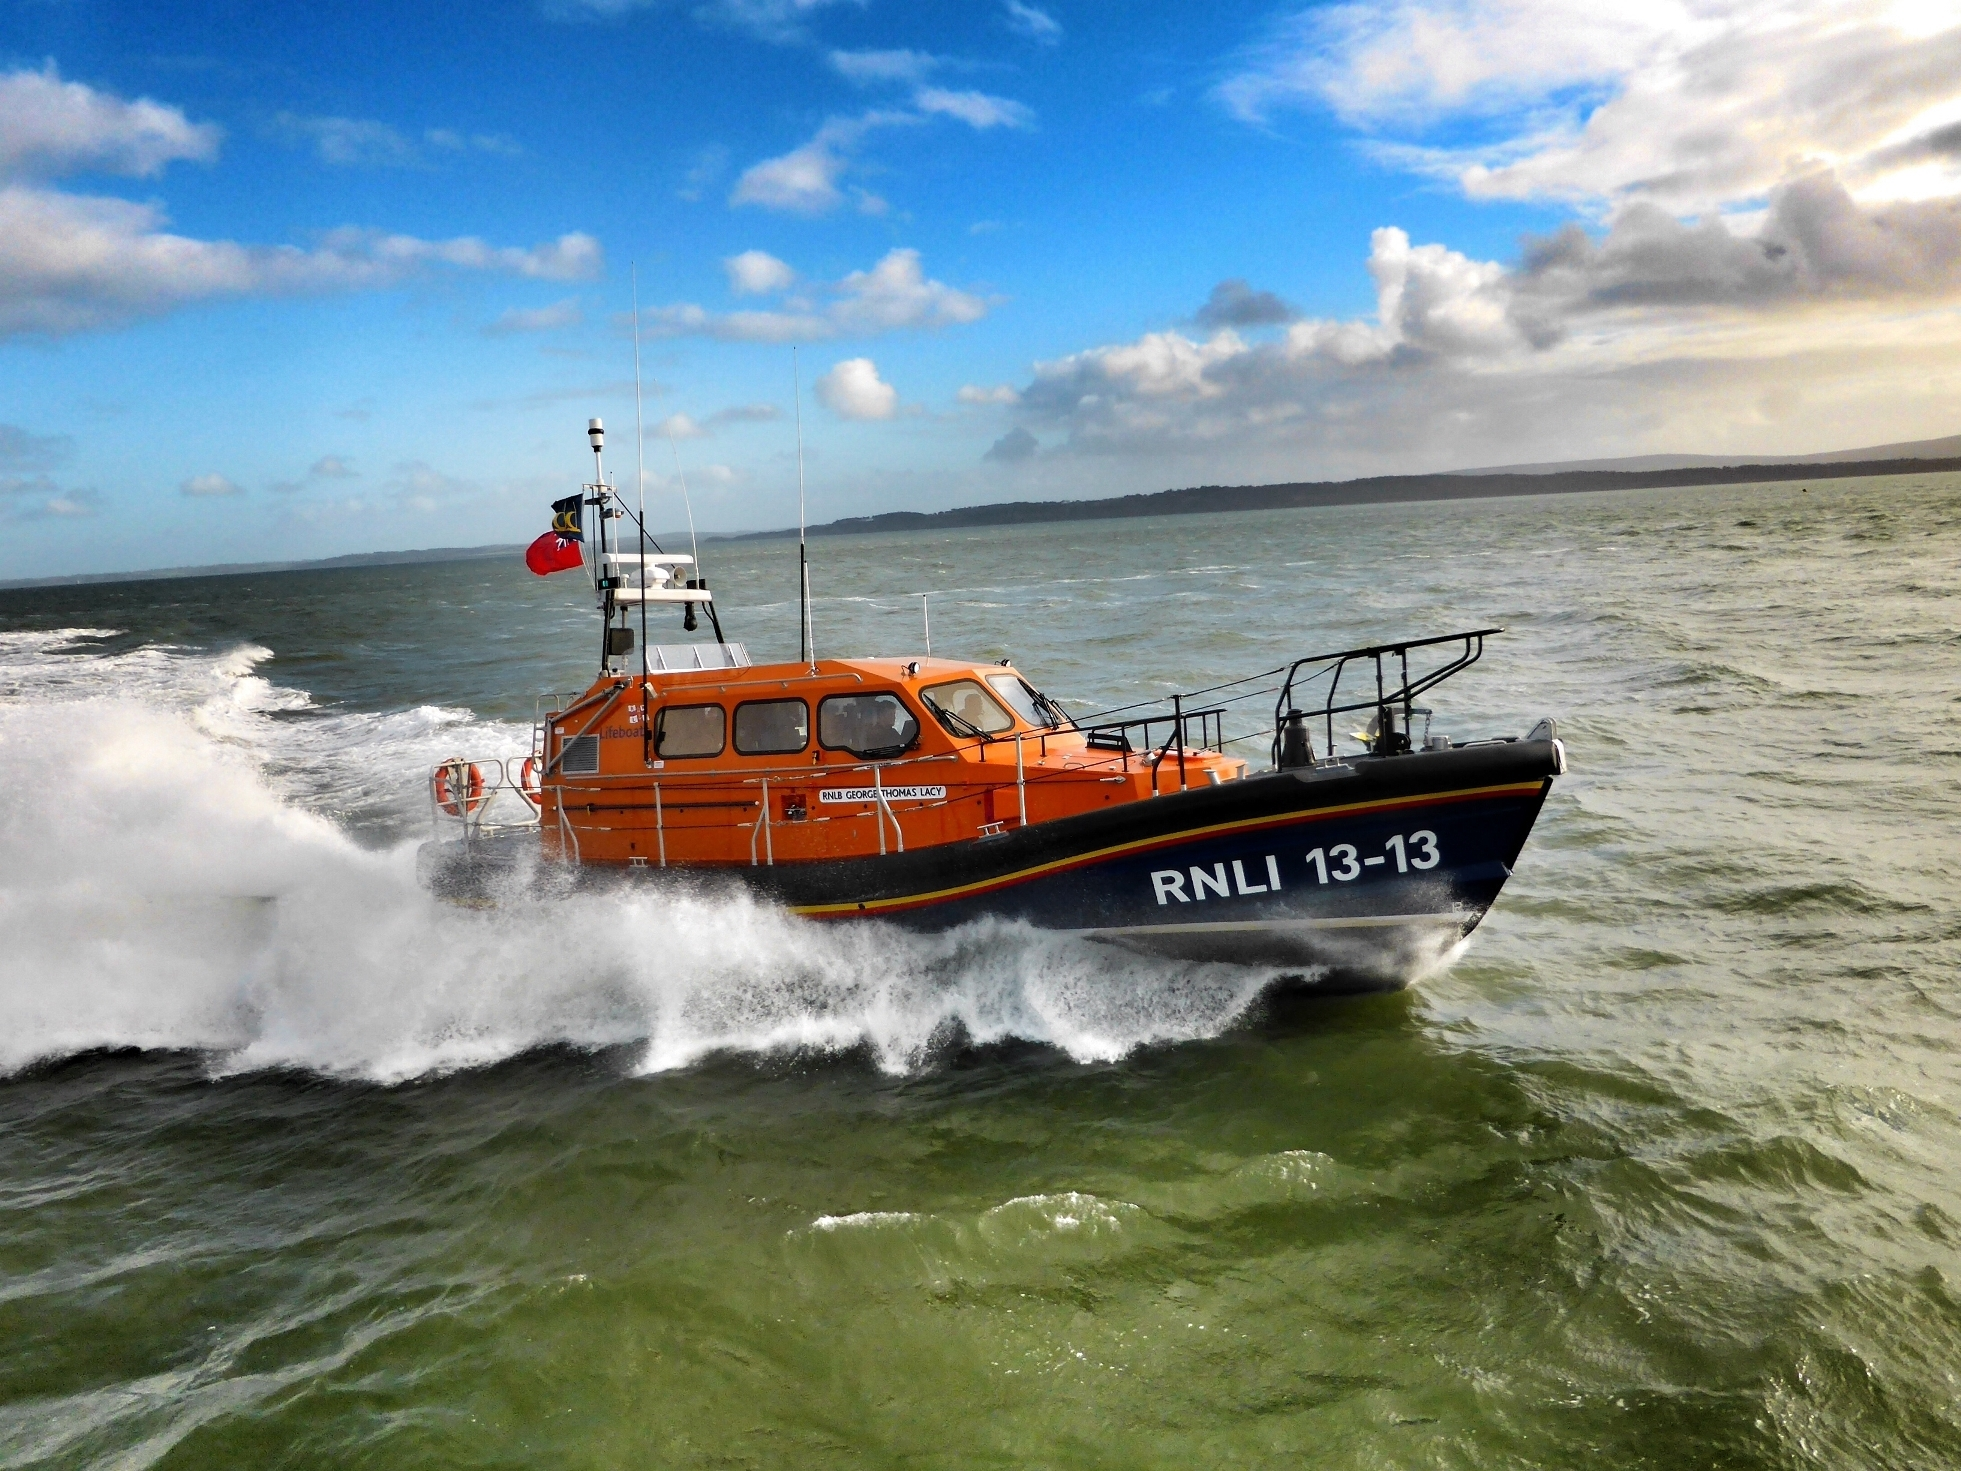 Swanage Shannon class lifeboat George Thomas Lacy 13-13 during sea trials prior to going on station in 2016.